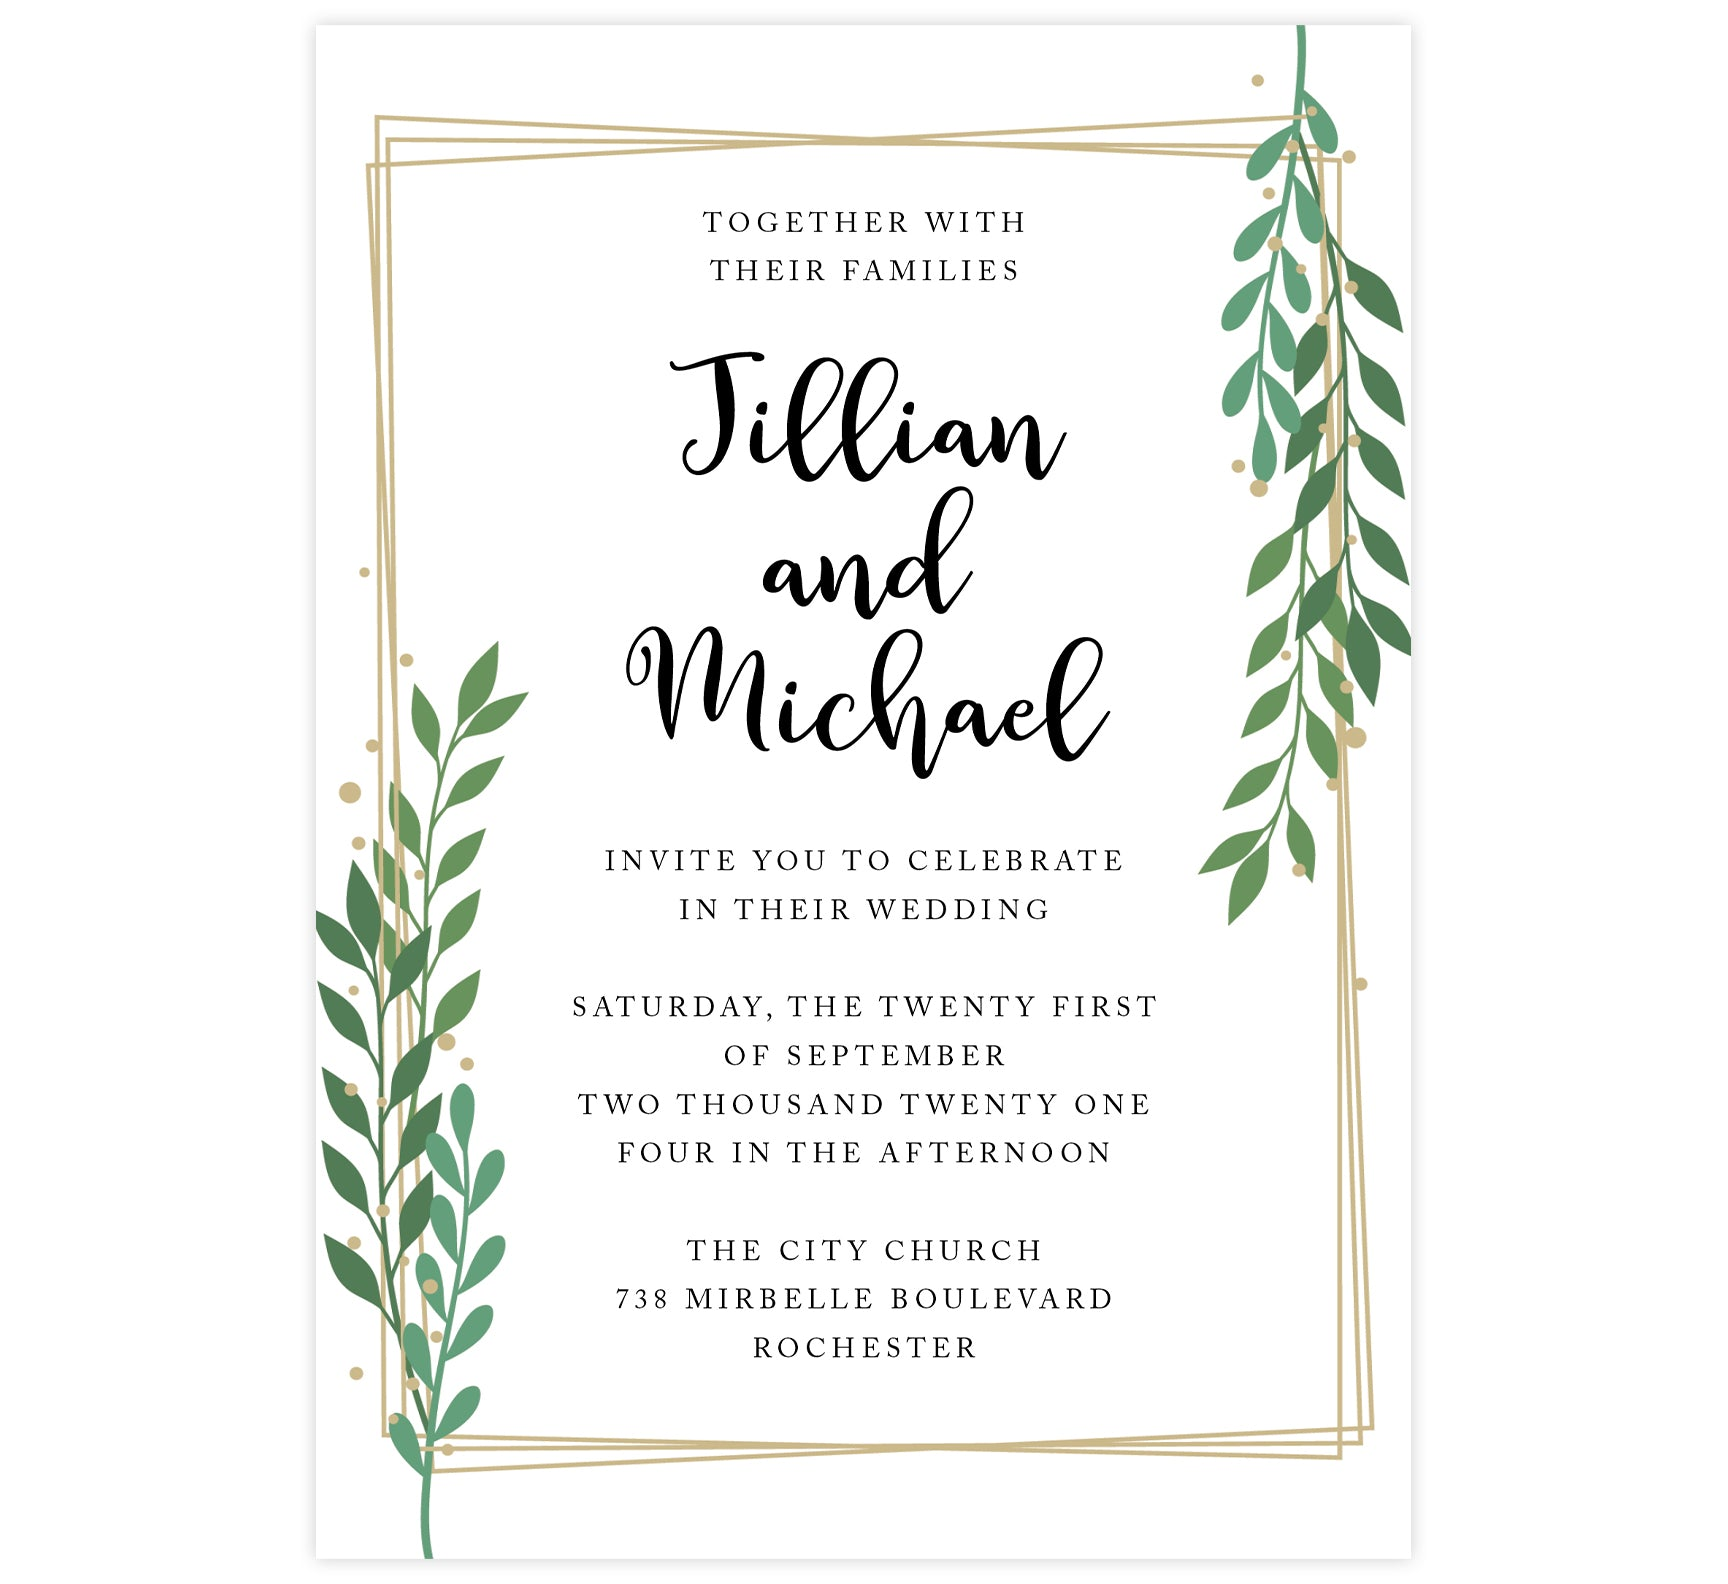 Gold Frame with Greenery wedding invitation; White background with gold frame, black text and greenery on the top right and bottom left corner